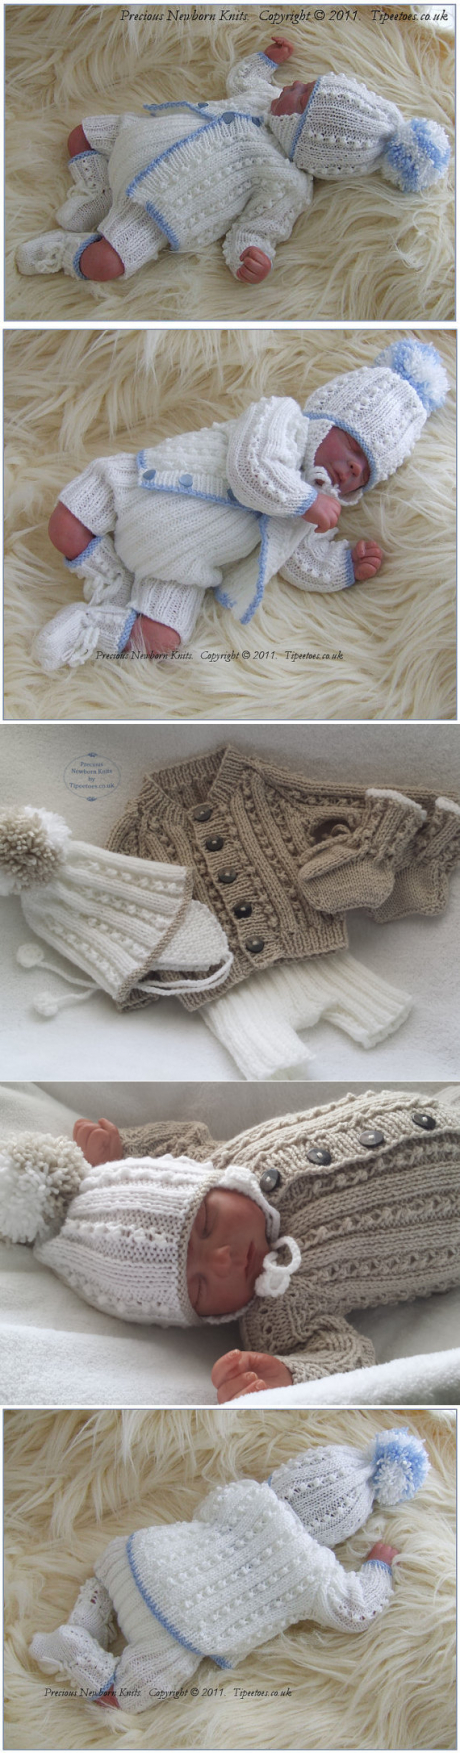 New Born Knitting Patterns Ba Knitting